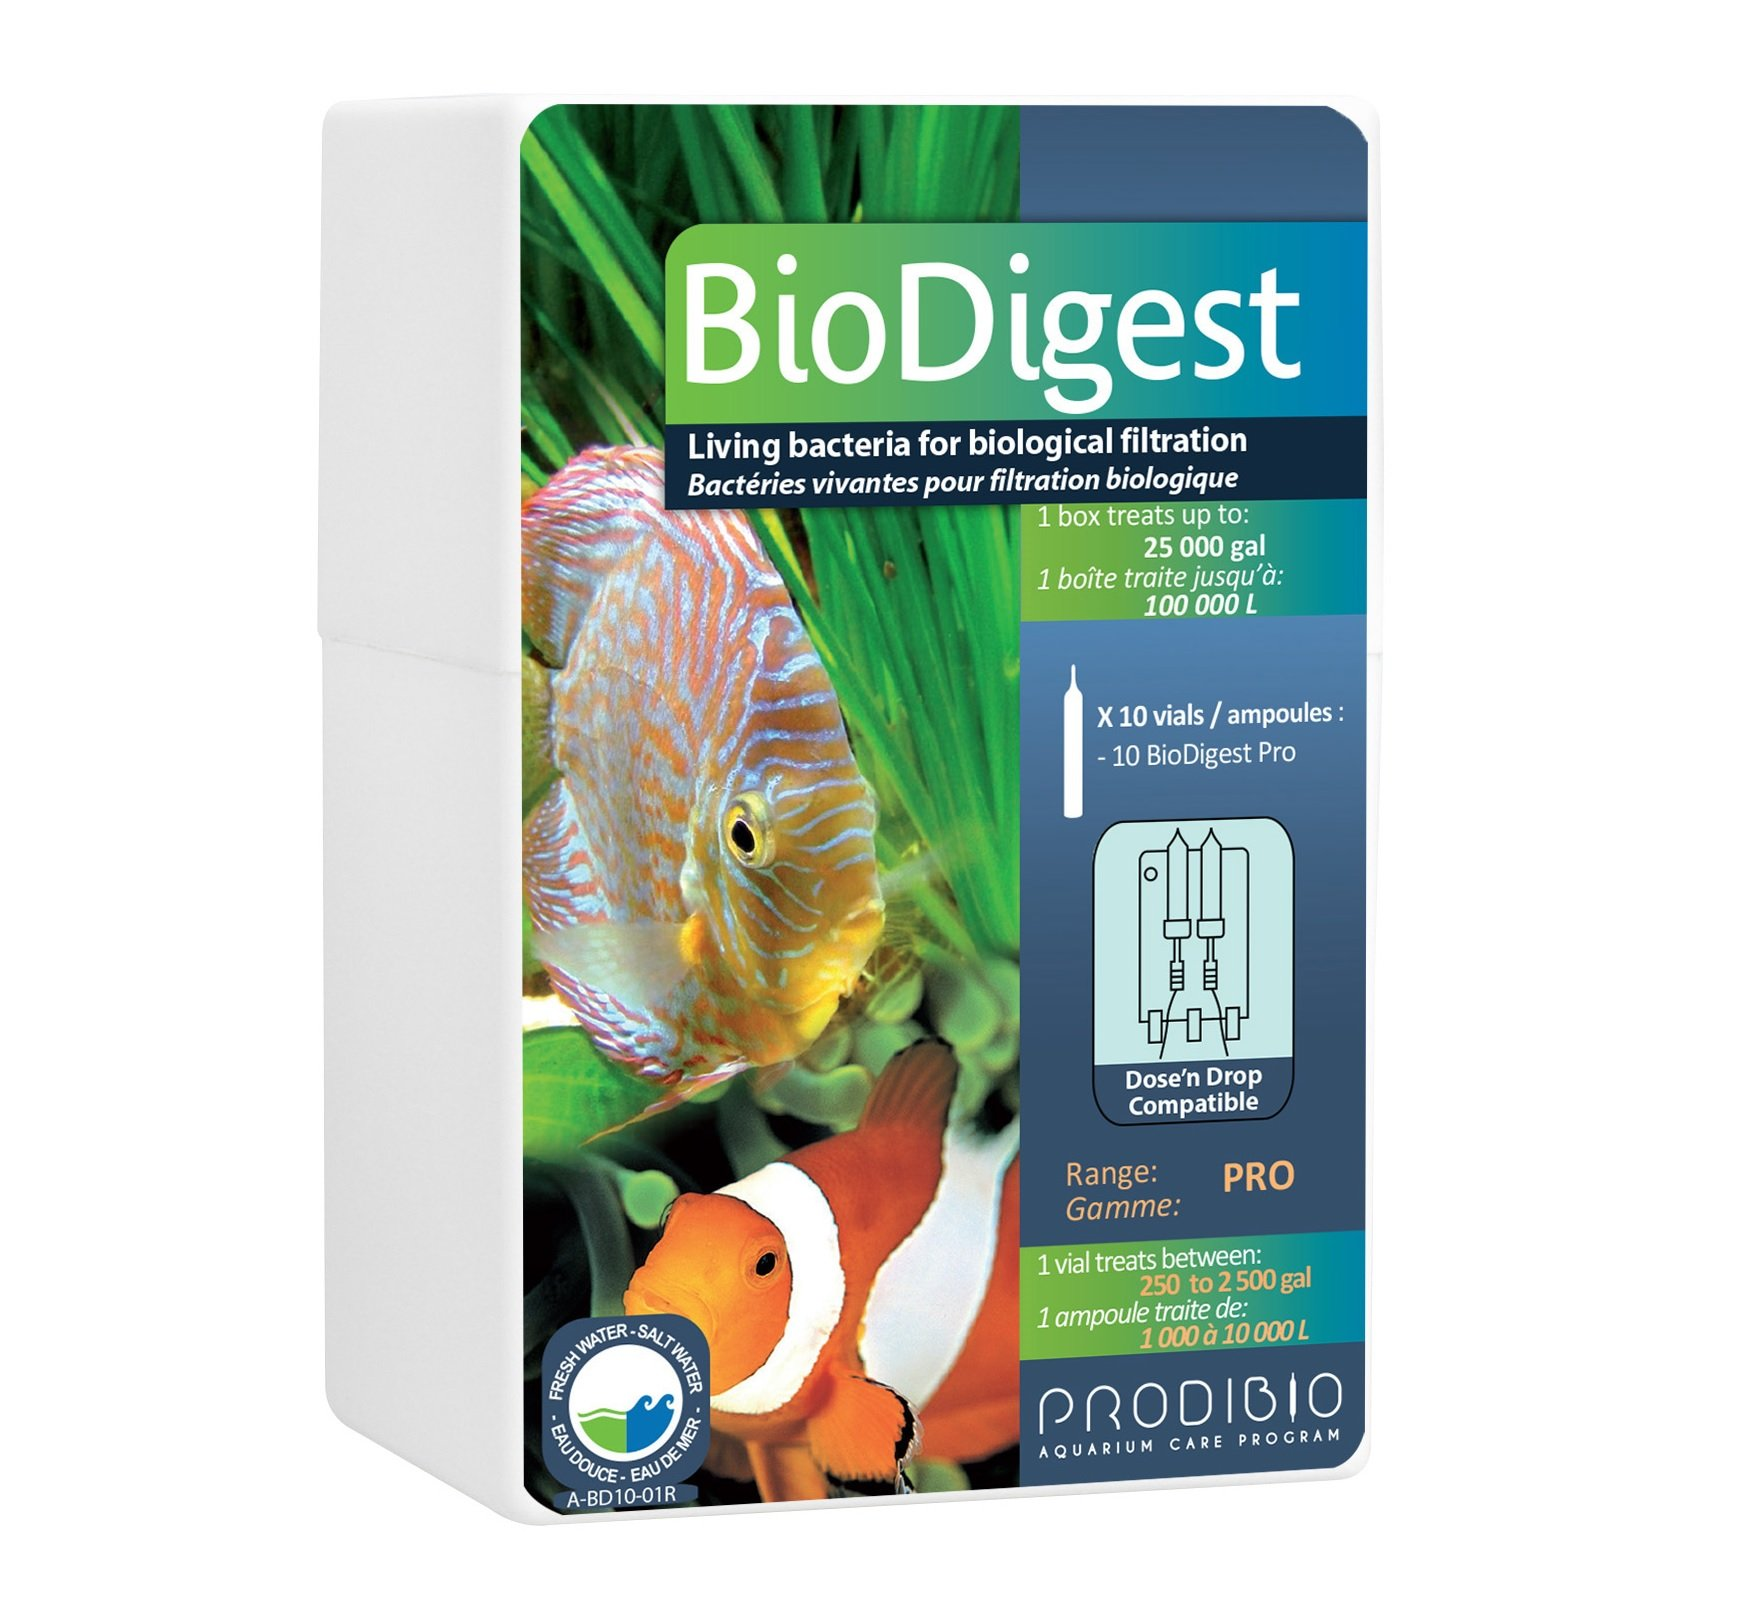 Prodibio Bio Digest Pro, Nitrifying Bacteria, Fresh and Salt Water, 10/10 mL Pro vials, 250 gal and up by Prodibio